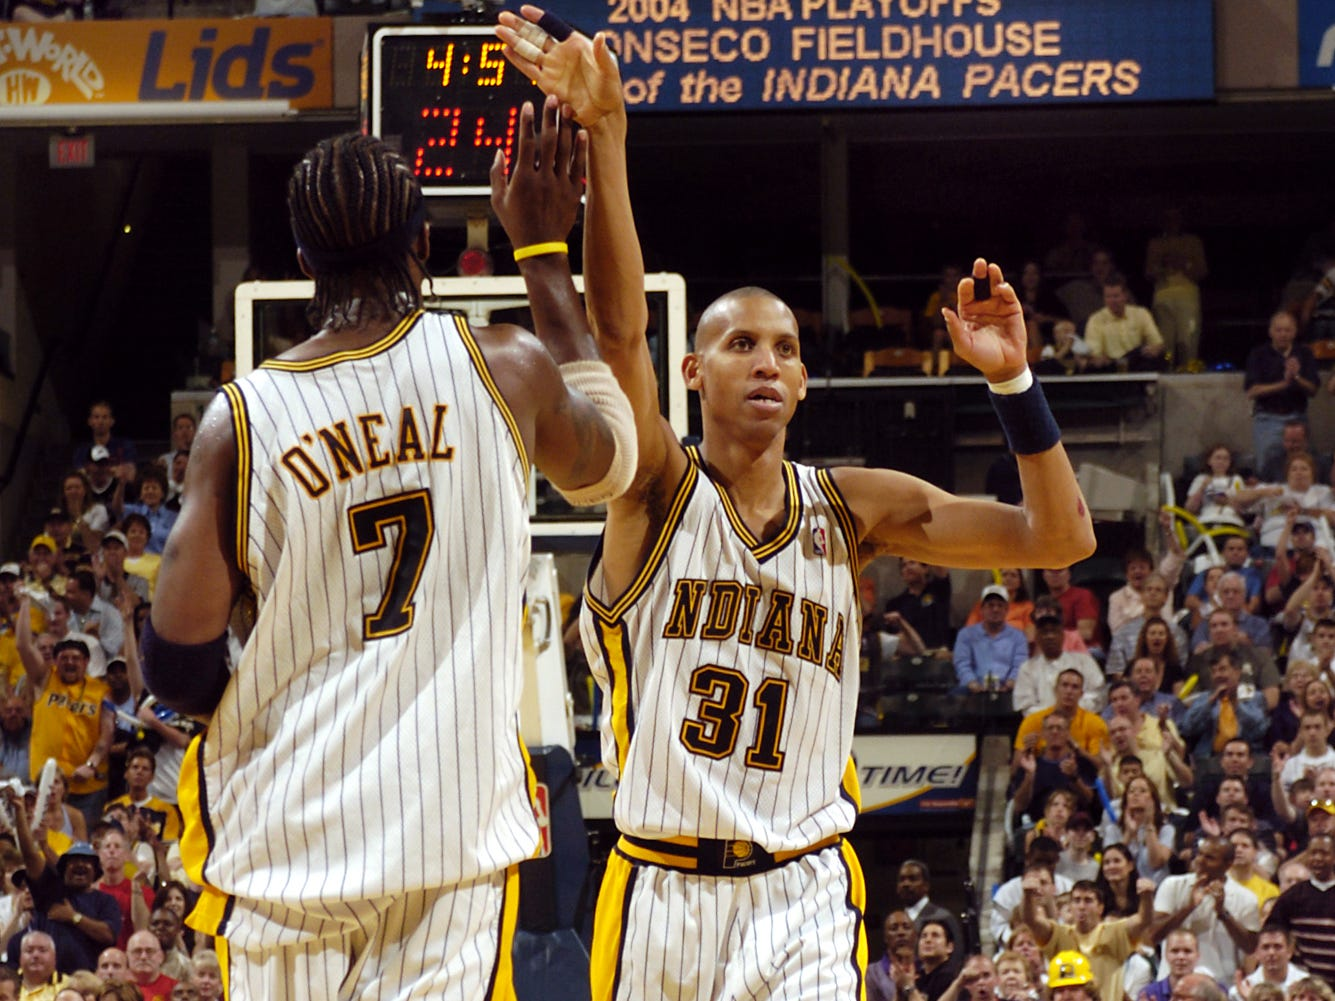 Jermaine O'Neal and Reggie Miller in 2004.